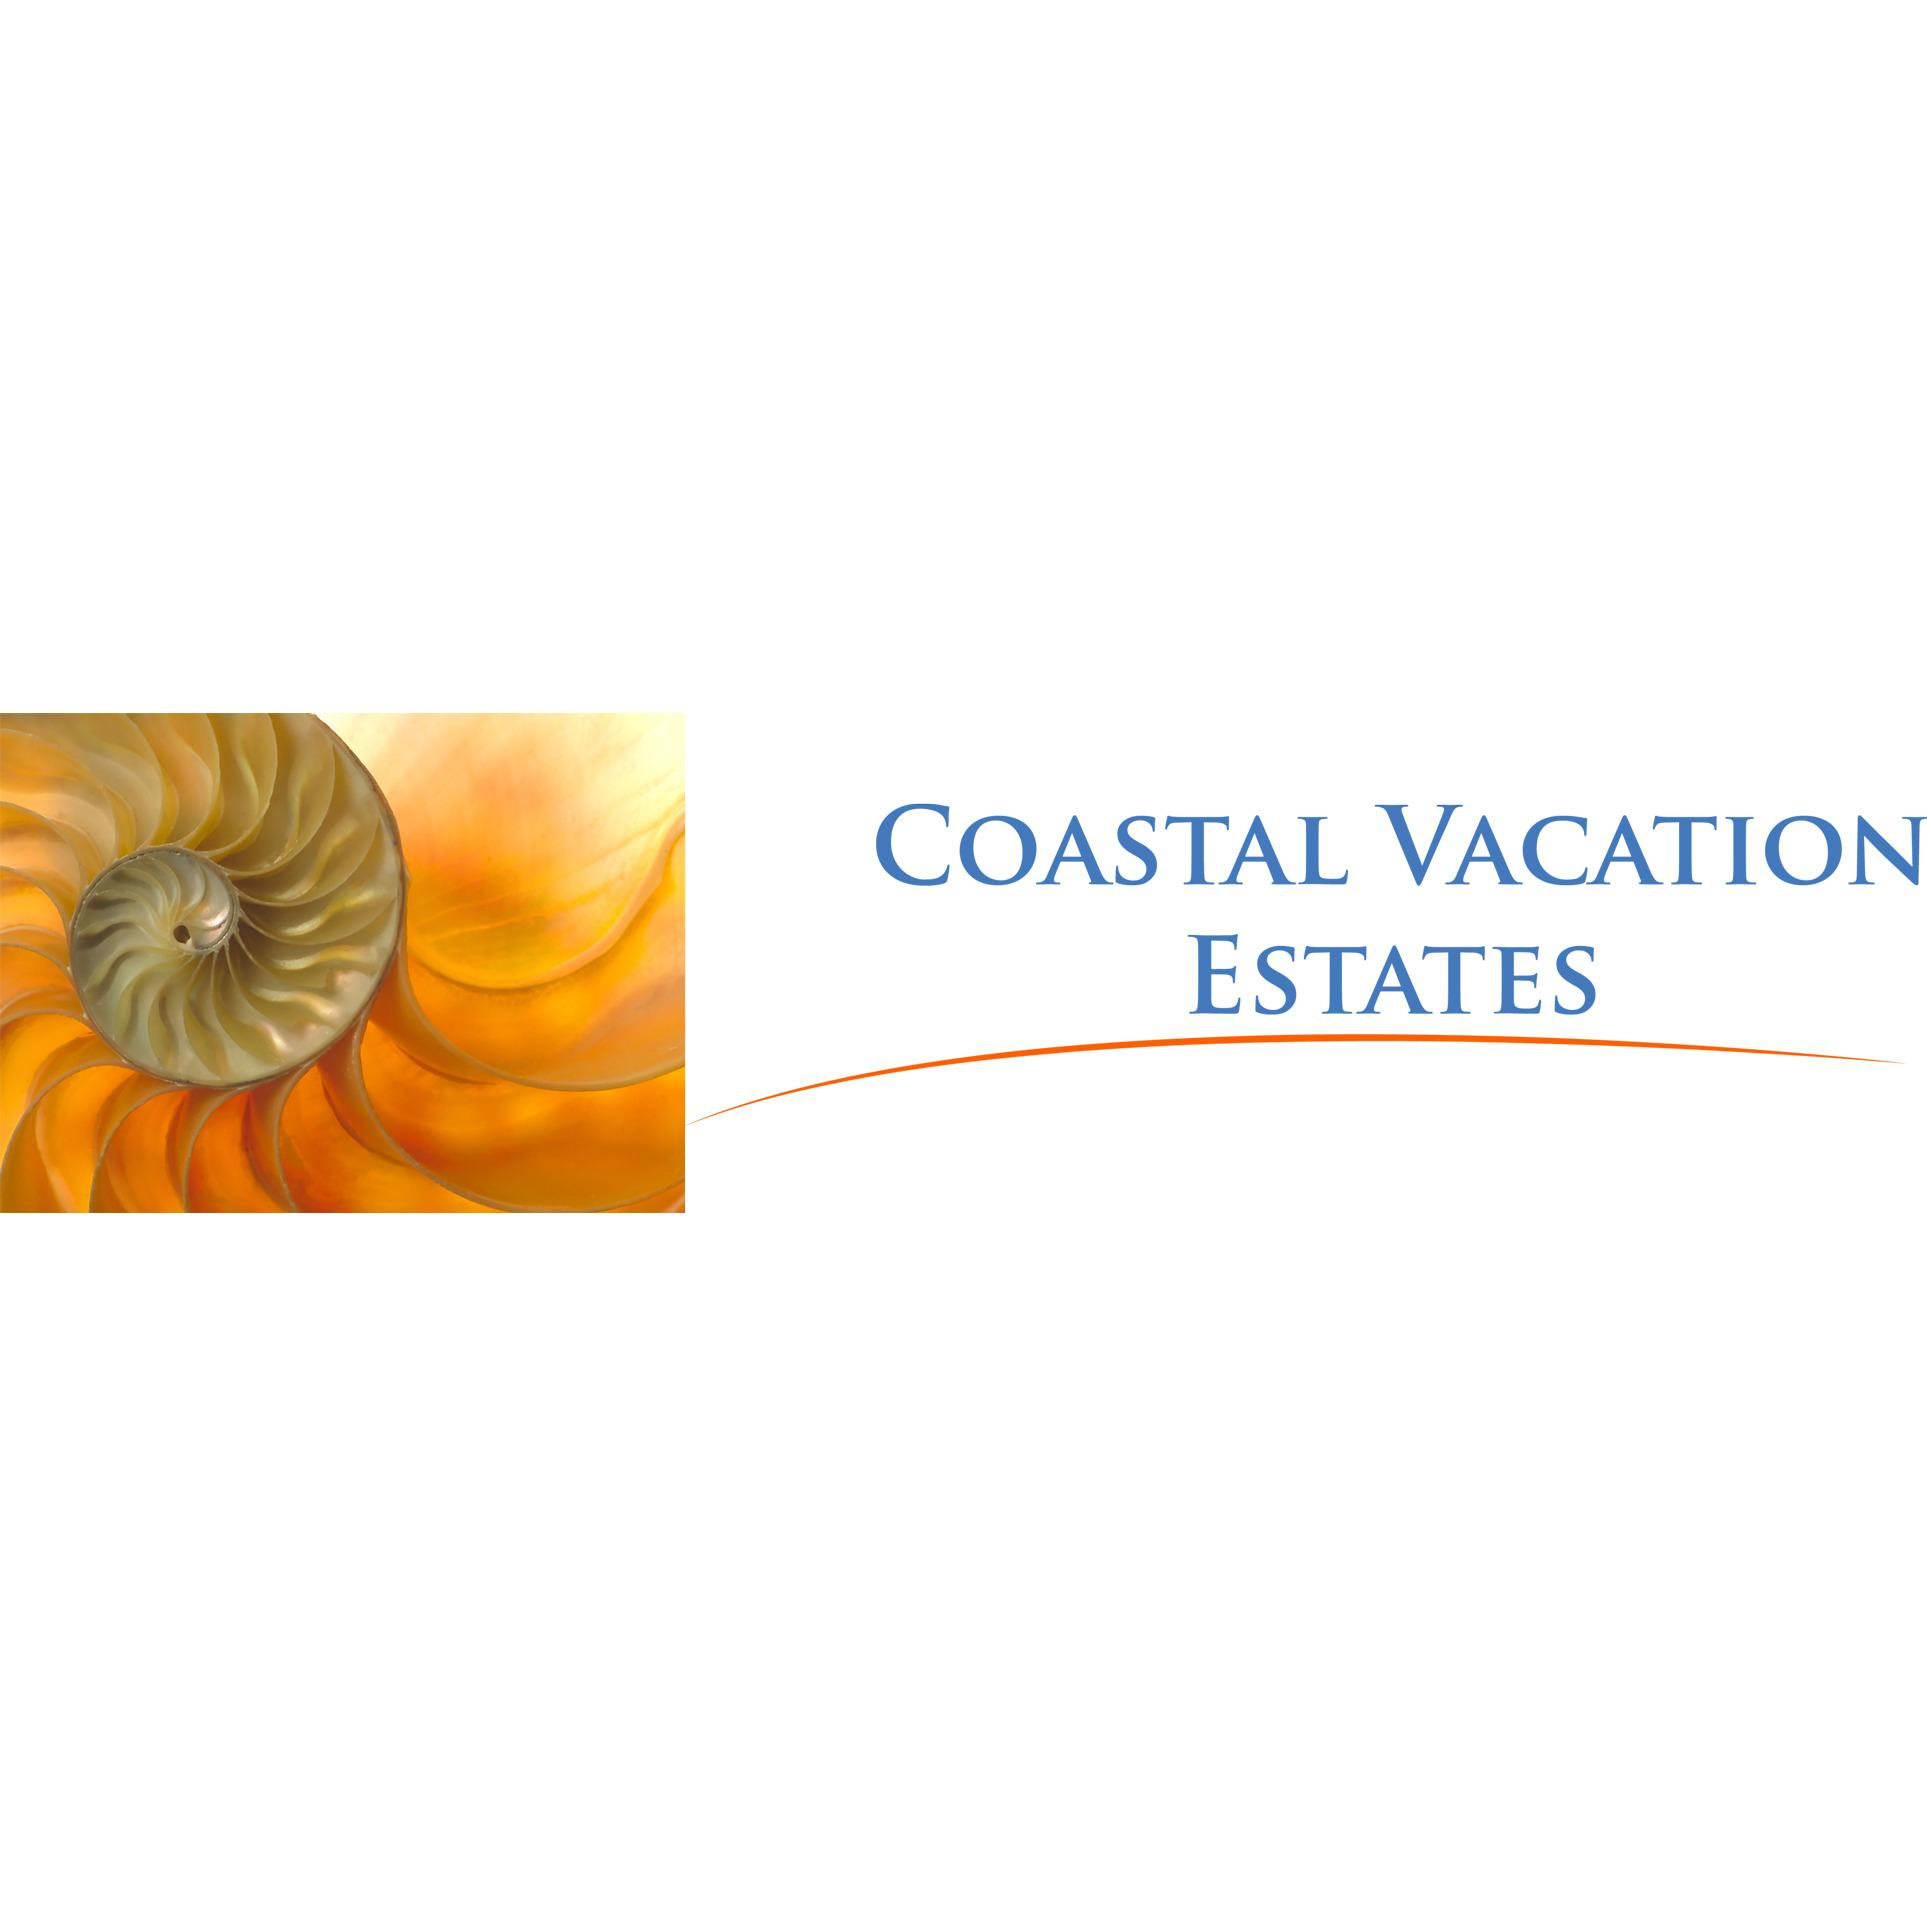 Coastal Vacation Estates